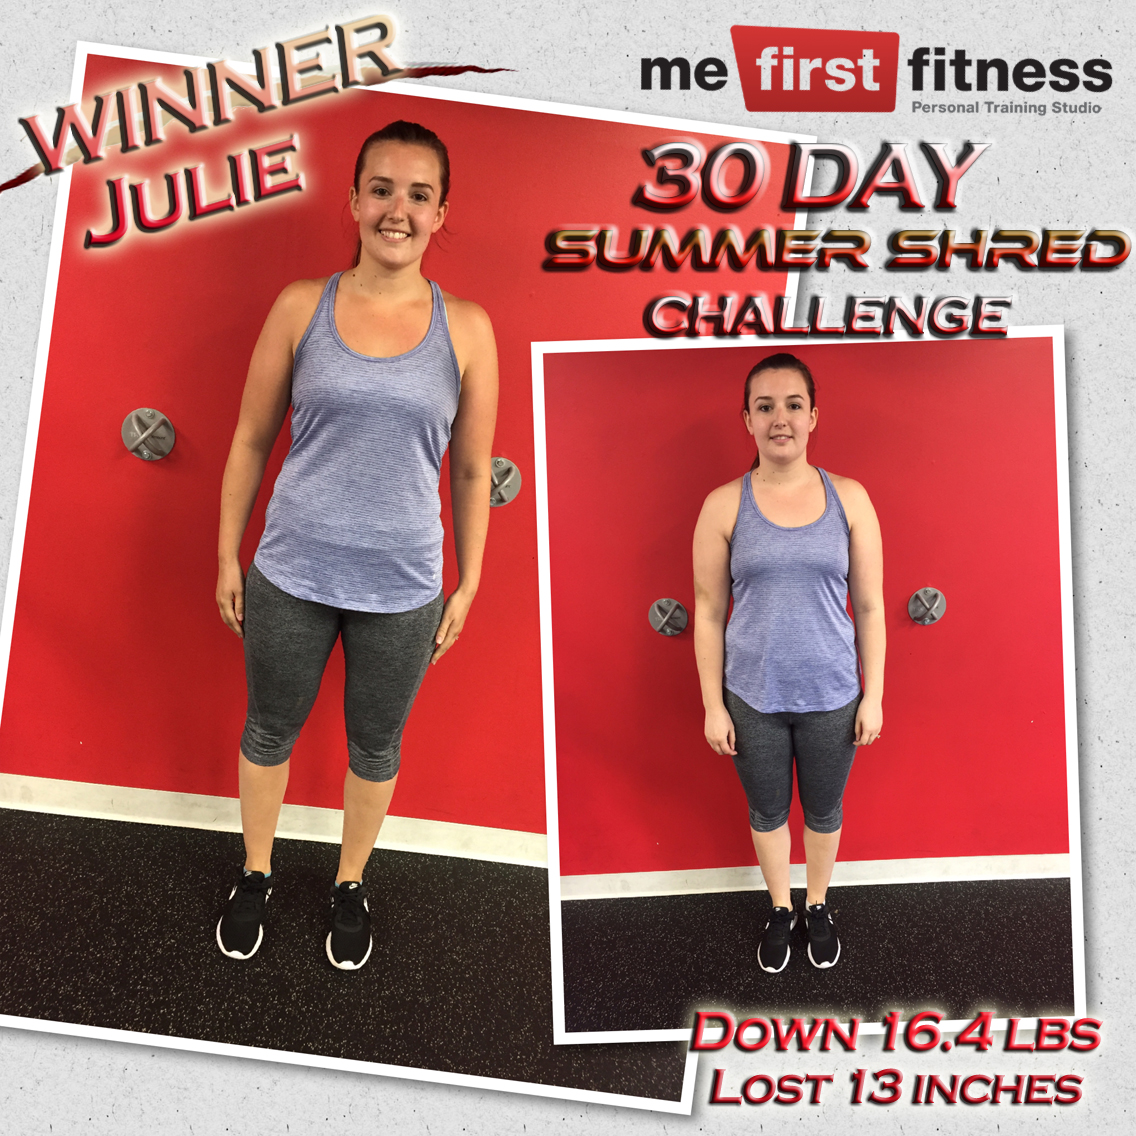 Winner – Total Weight Loss | Me First Fitness Bootcamps